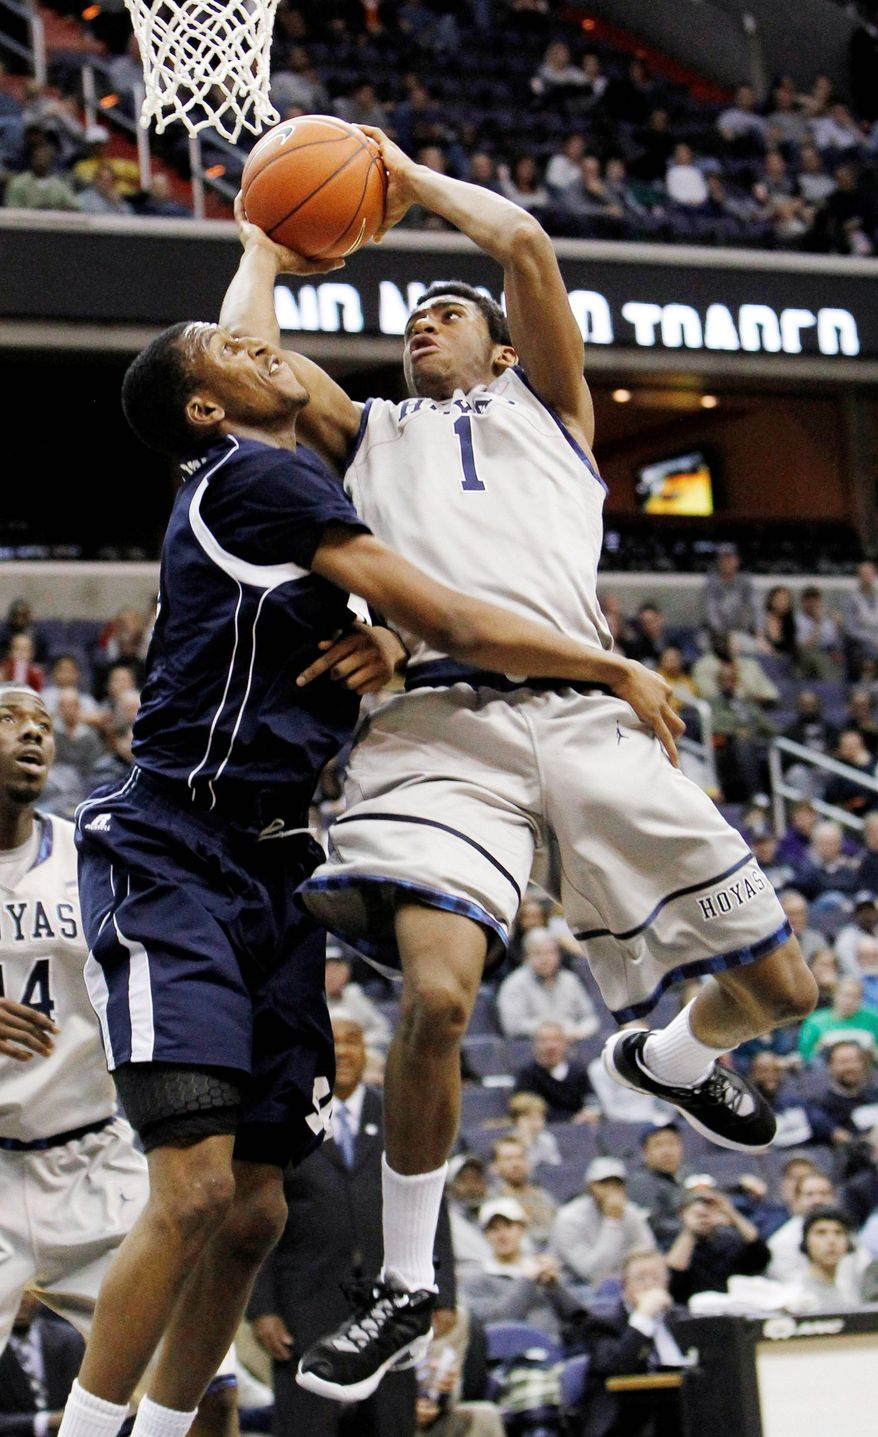 Forward Hollis Thompson is averaging 14.7 points on 54 percent shooting from the floor for No. 16 Georgetown. (Associated Press)